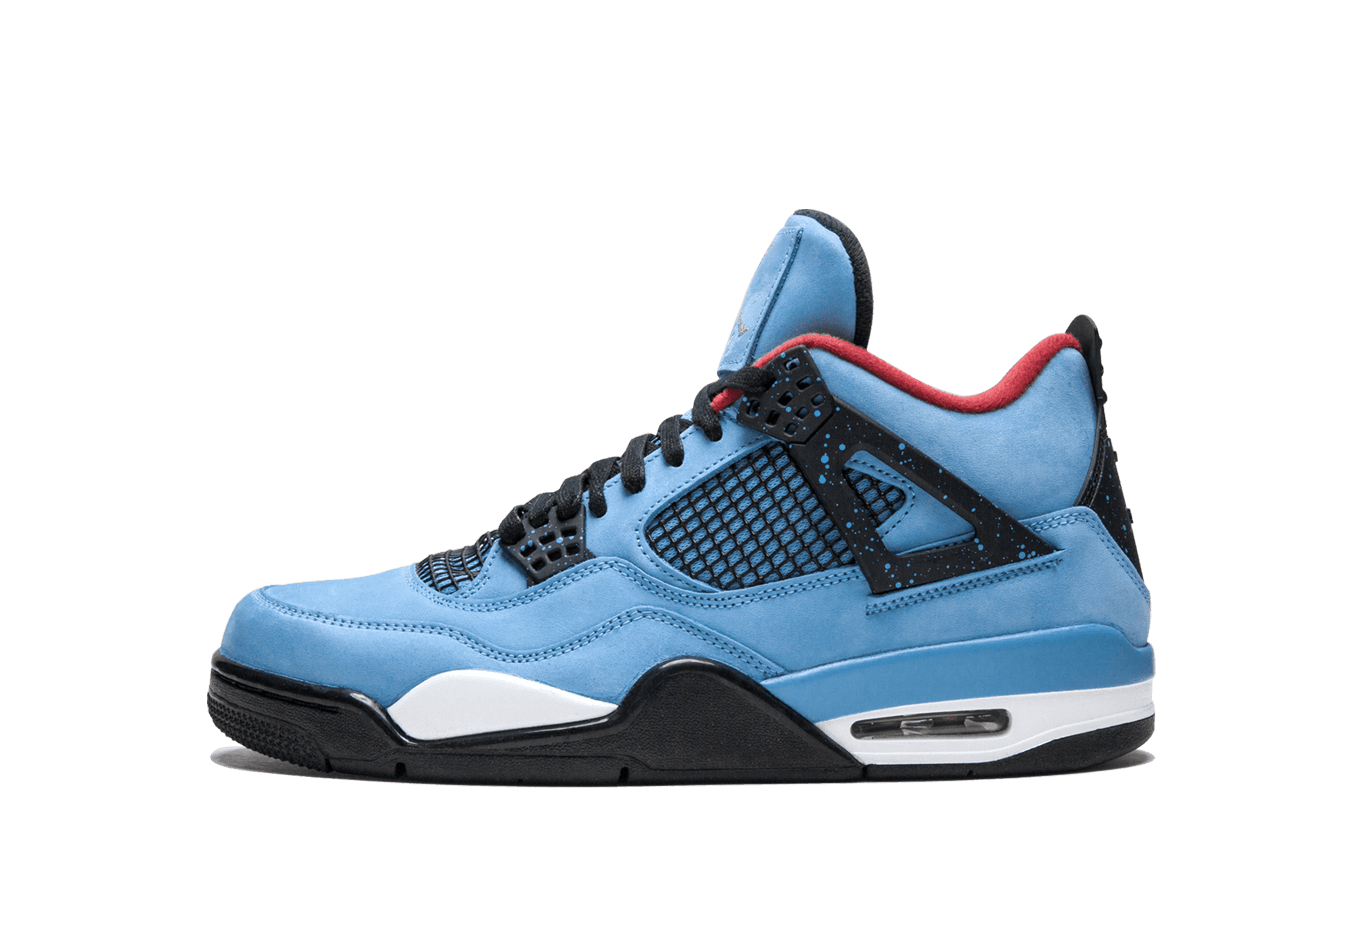 Buy New JORDANS     Travis Scott - Cactus Jack sneakers